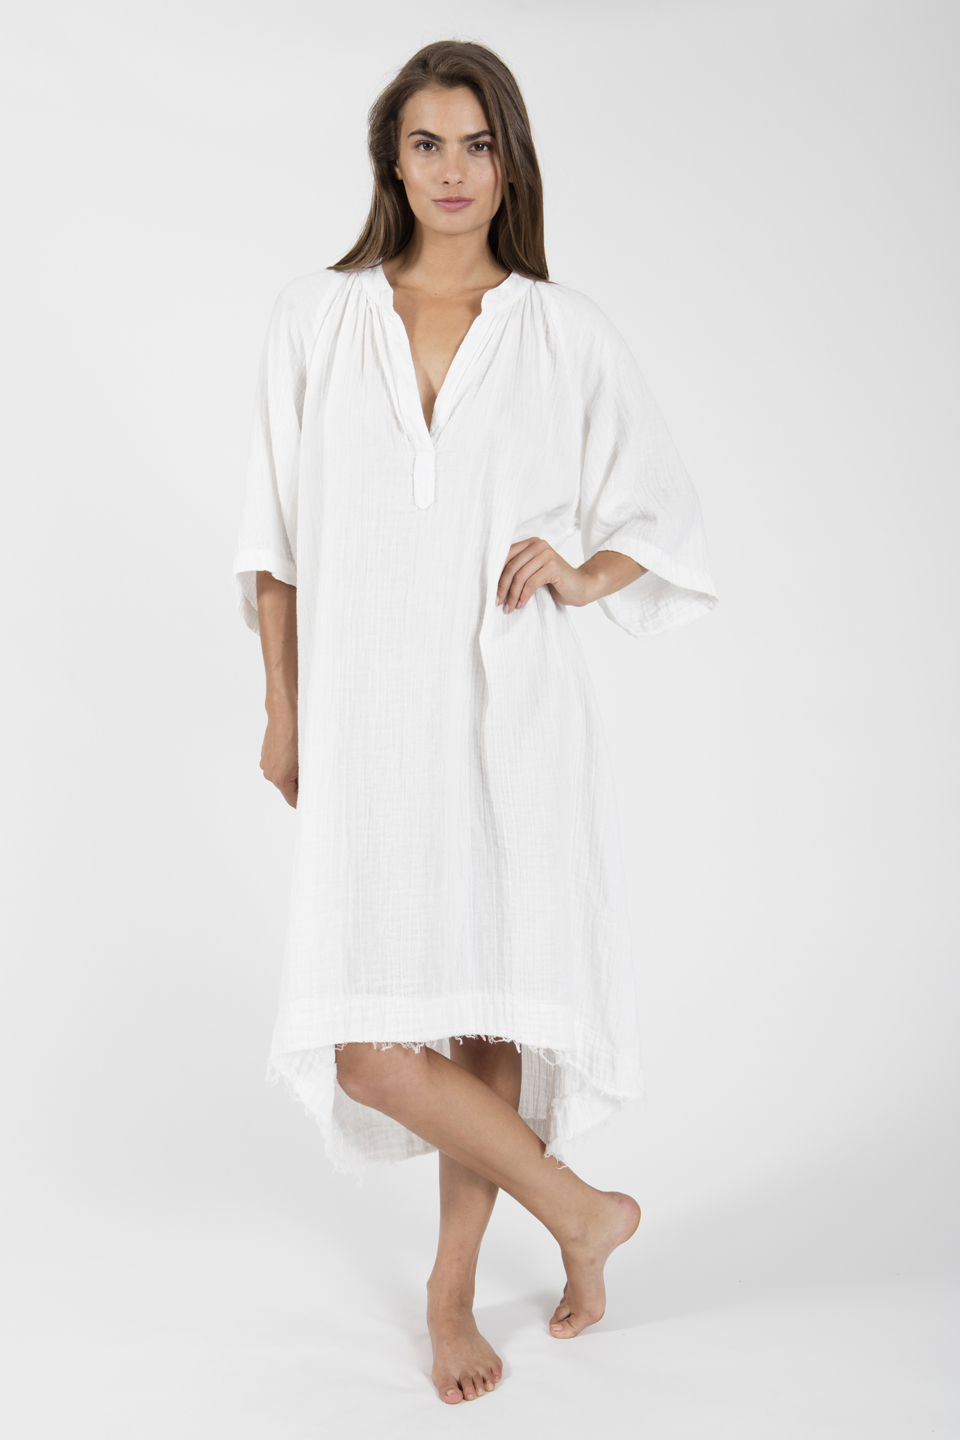 Tangier long sleeve caftan - white